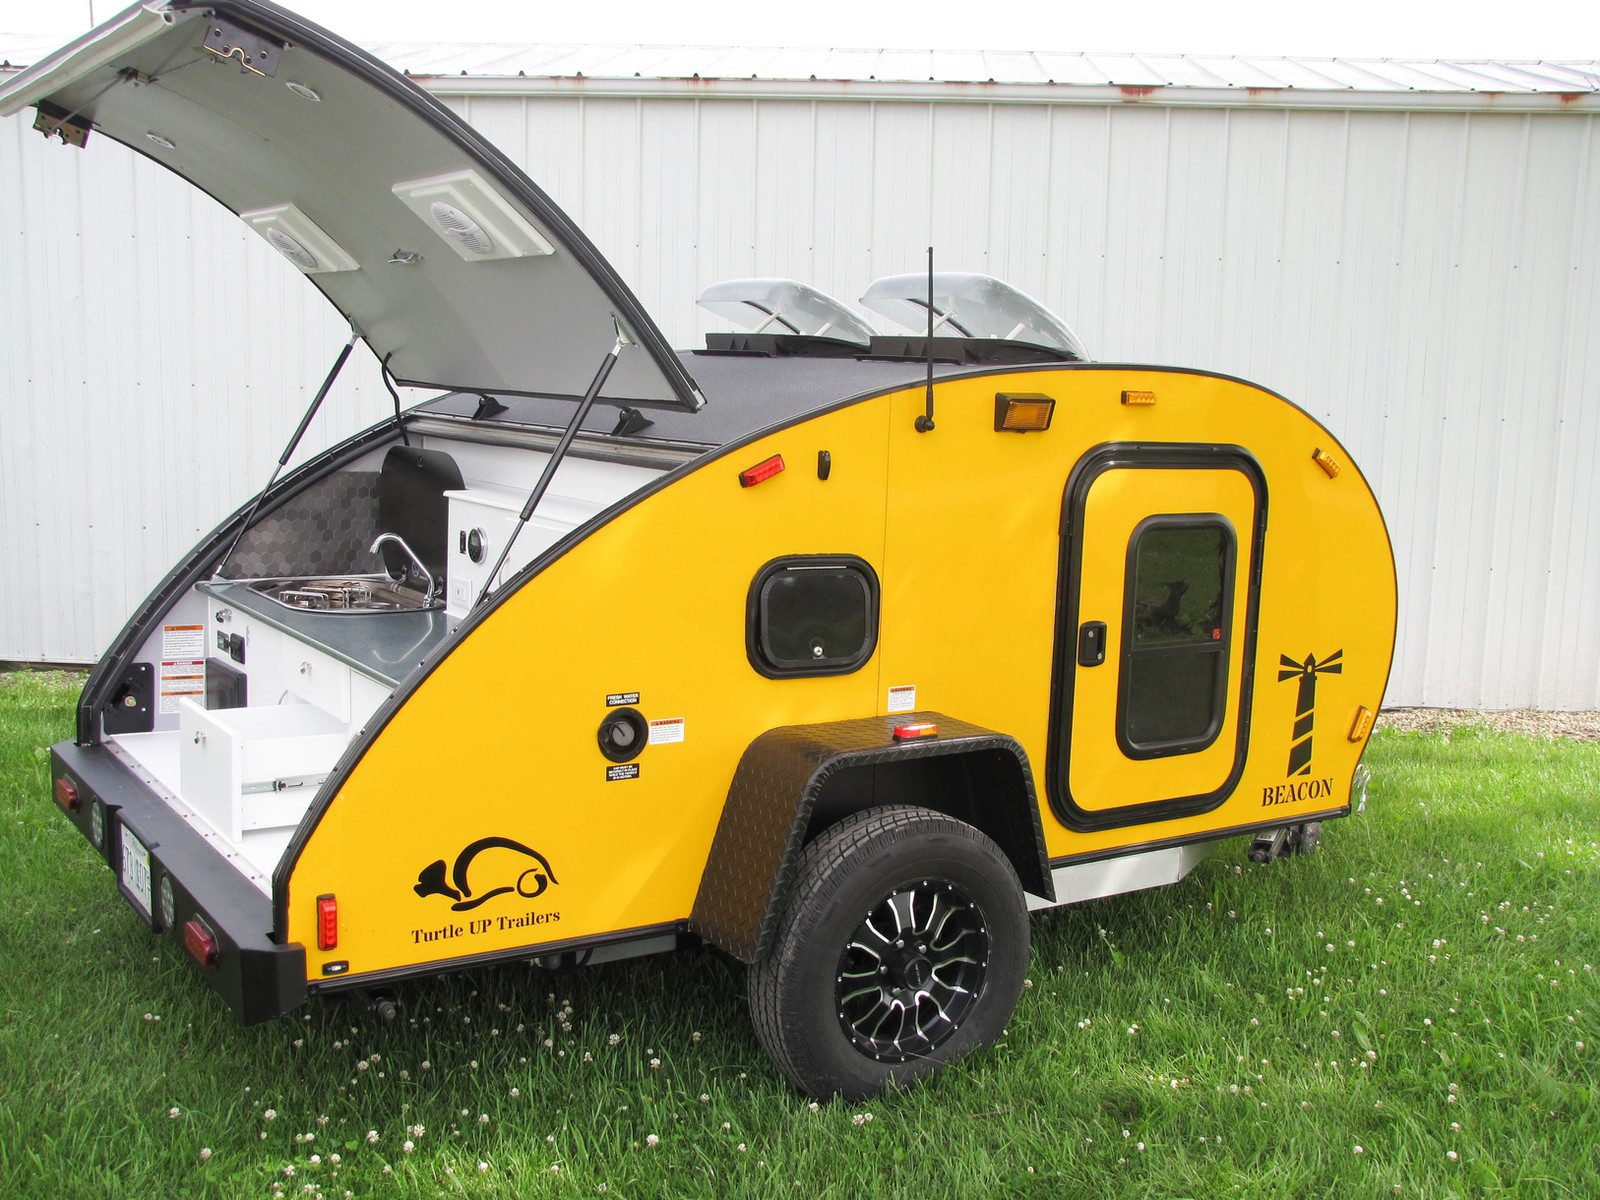 Turtle Up Trailers Teardrop Campers The Beacon Model